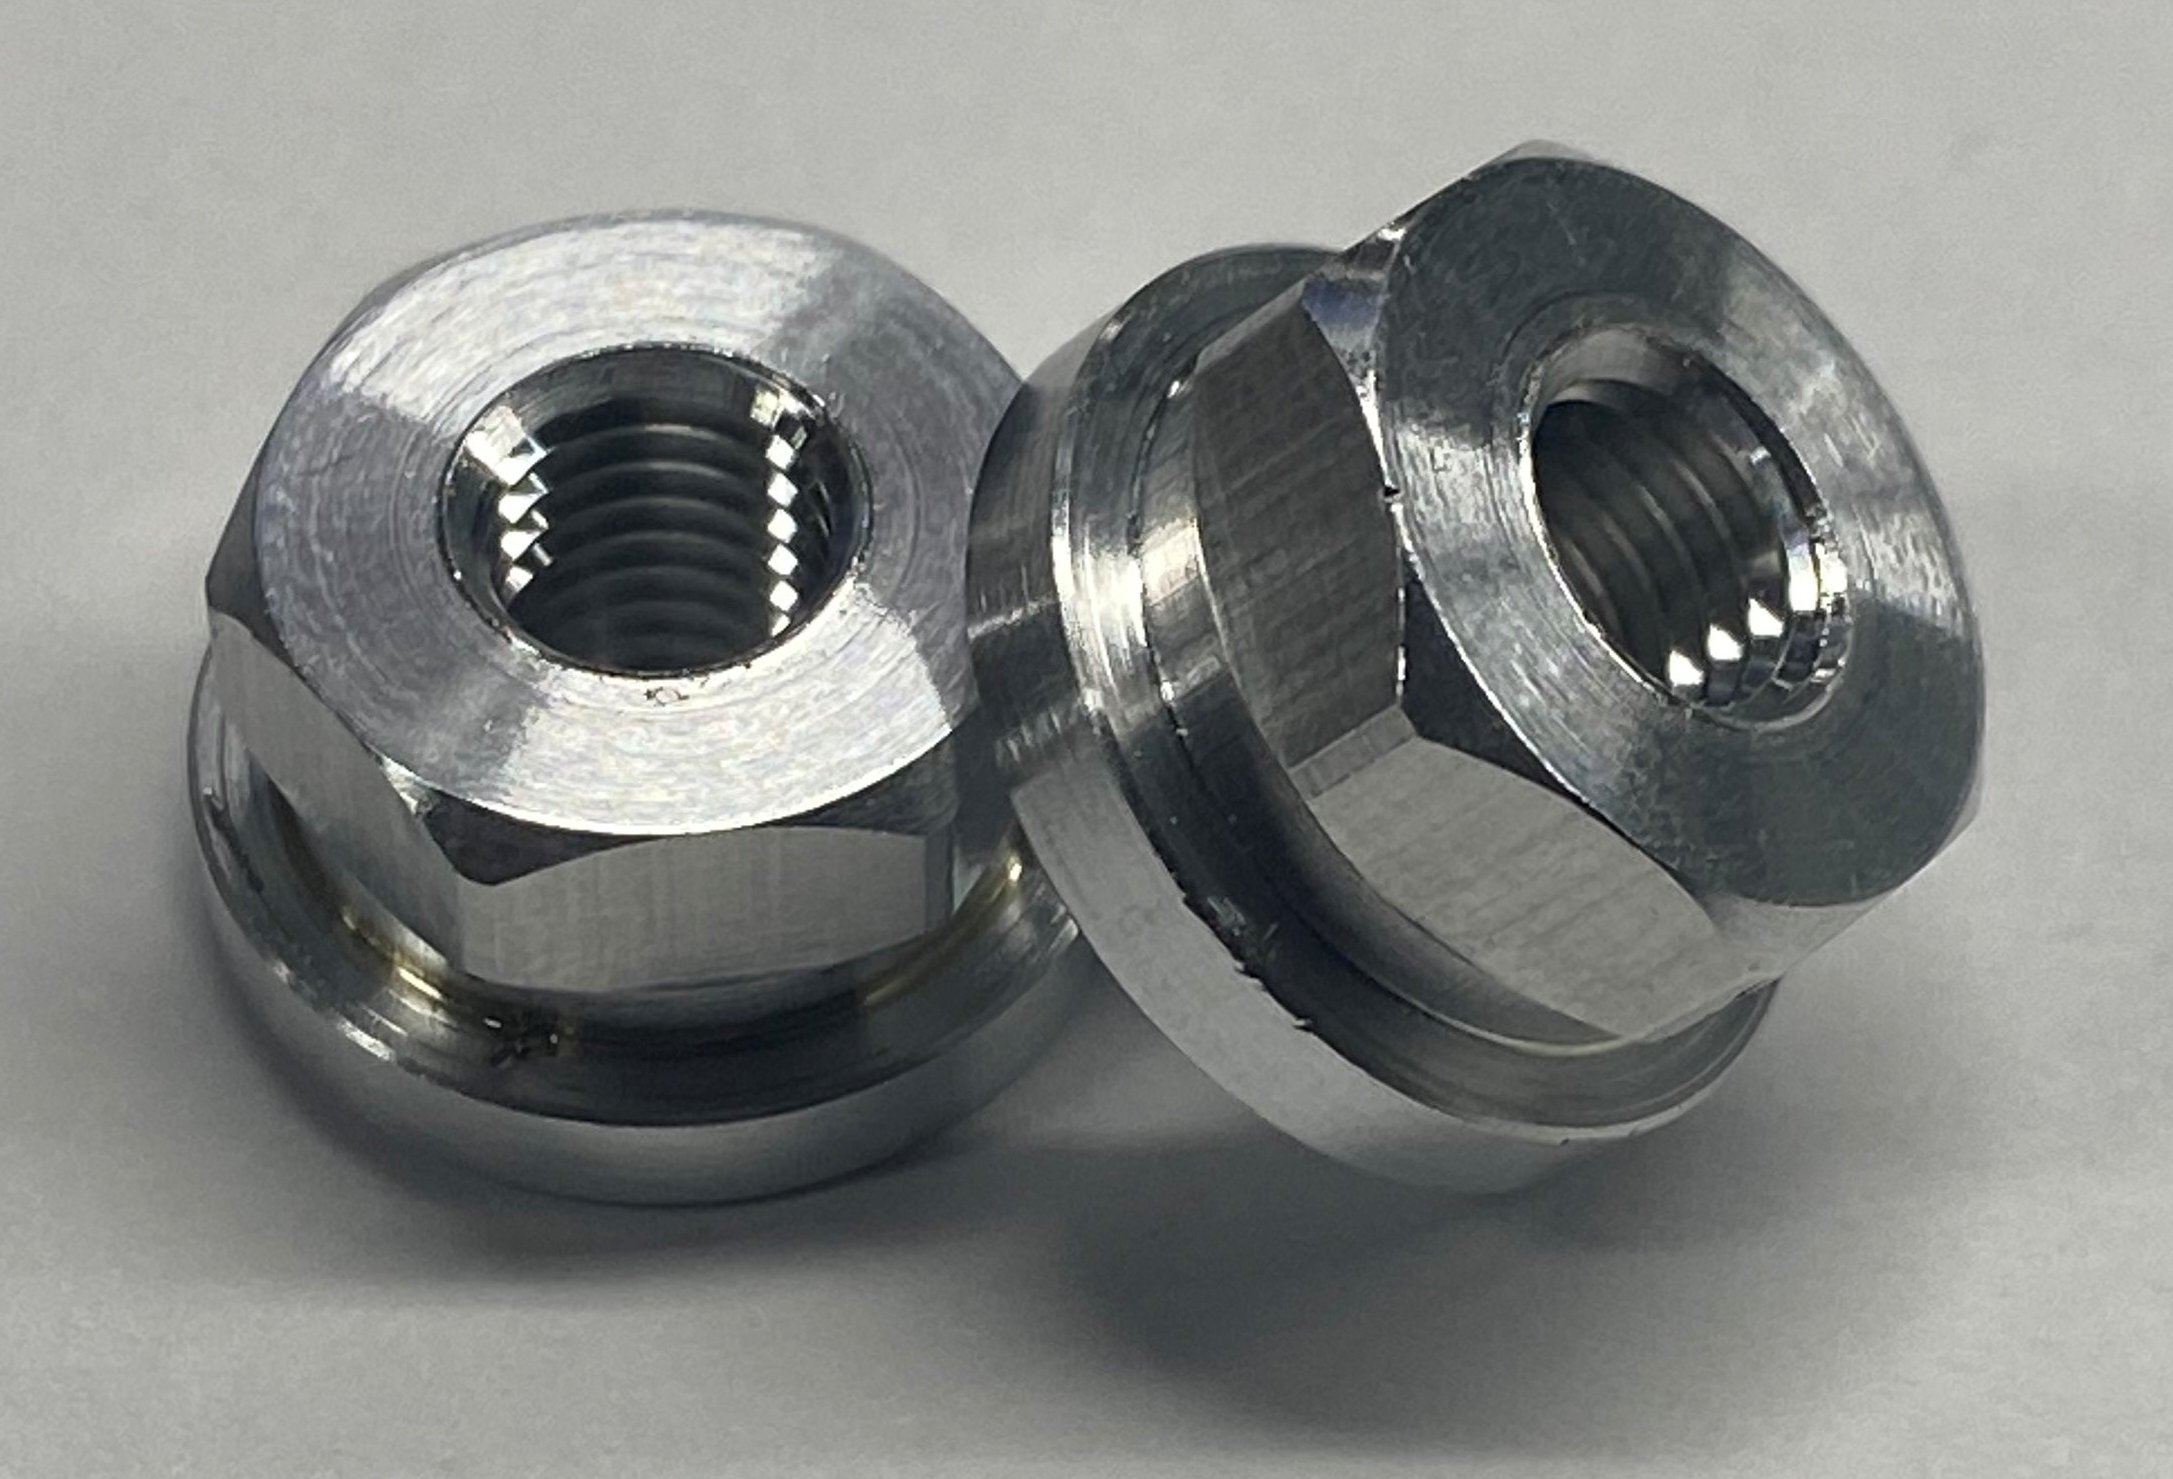 Aluminum 1/2 Hex- 1/4-28 Wheel Nuts